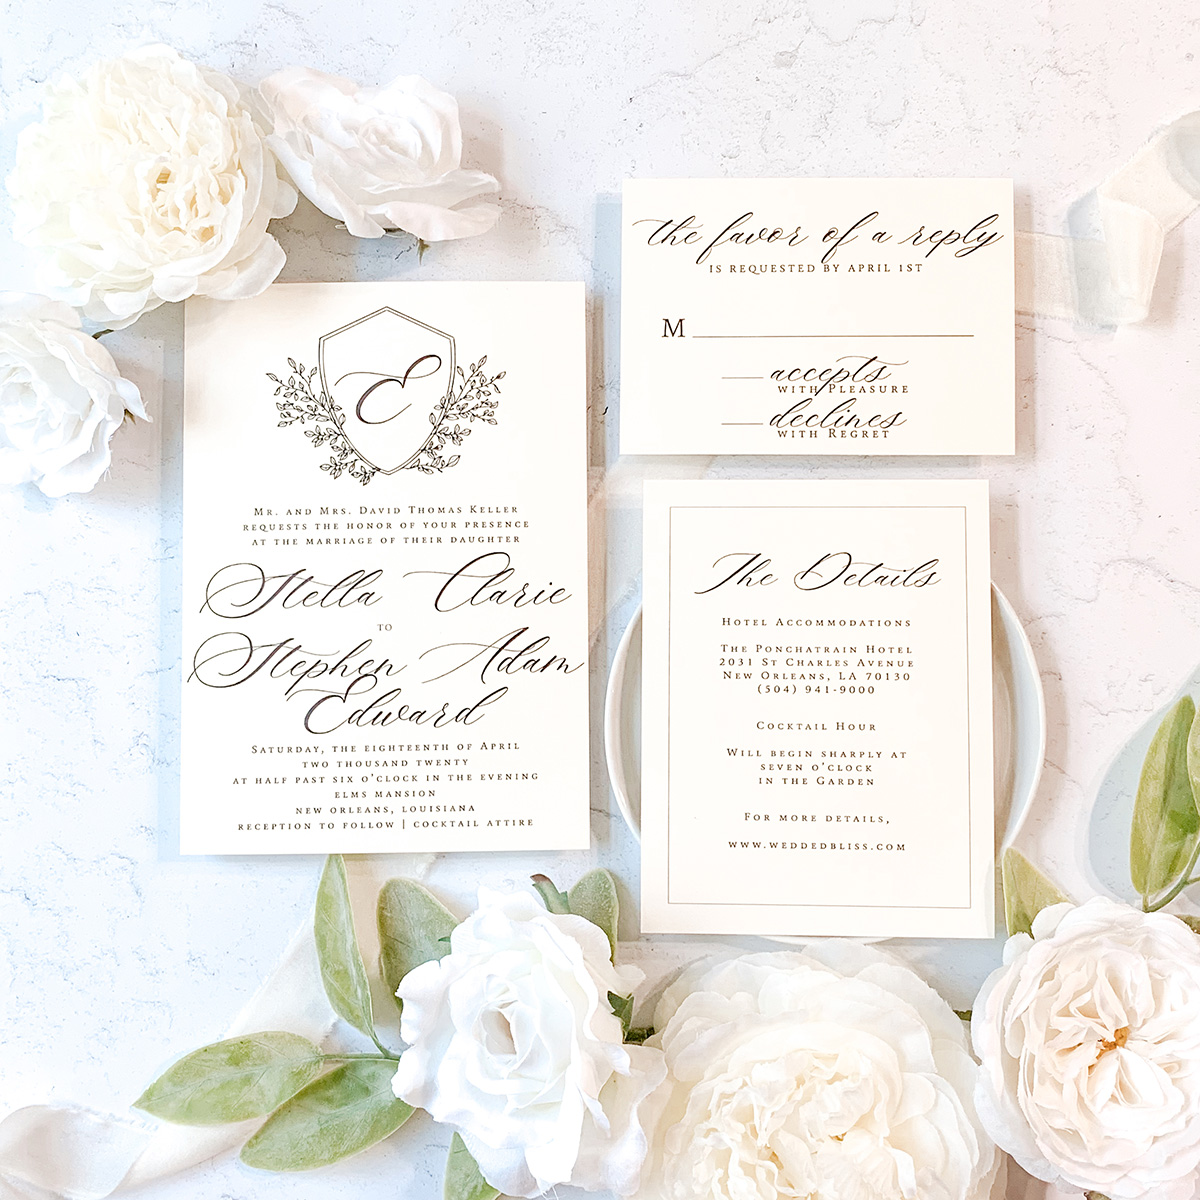 Wedding Invitation by InvitoBella, LLC